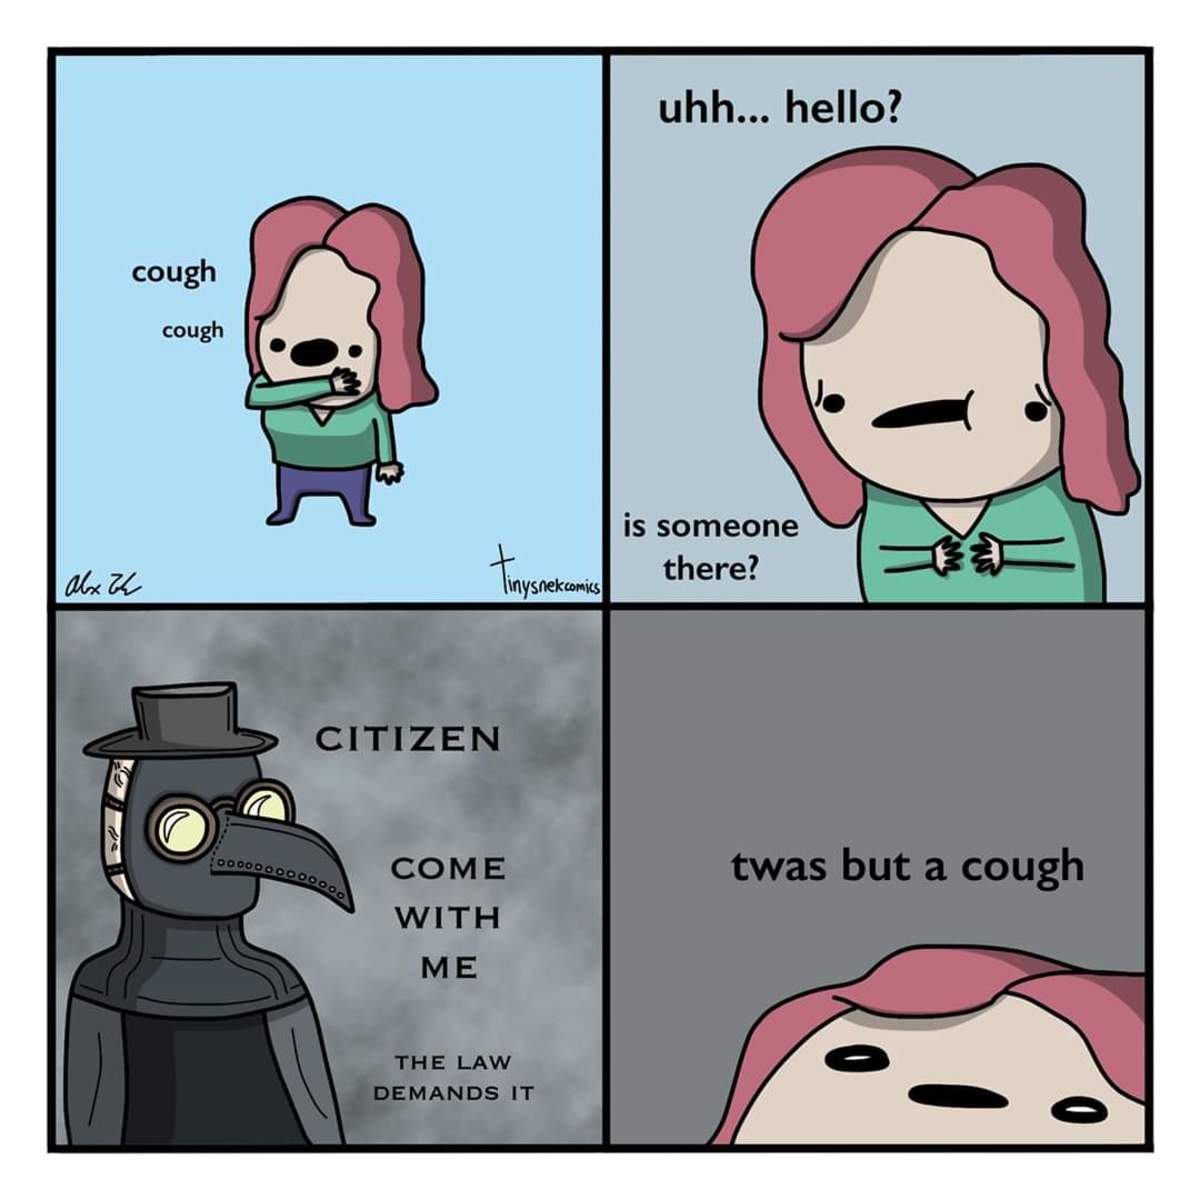 A funny meme created by Tiny Snek Comics in Facebook featuring SCP-049